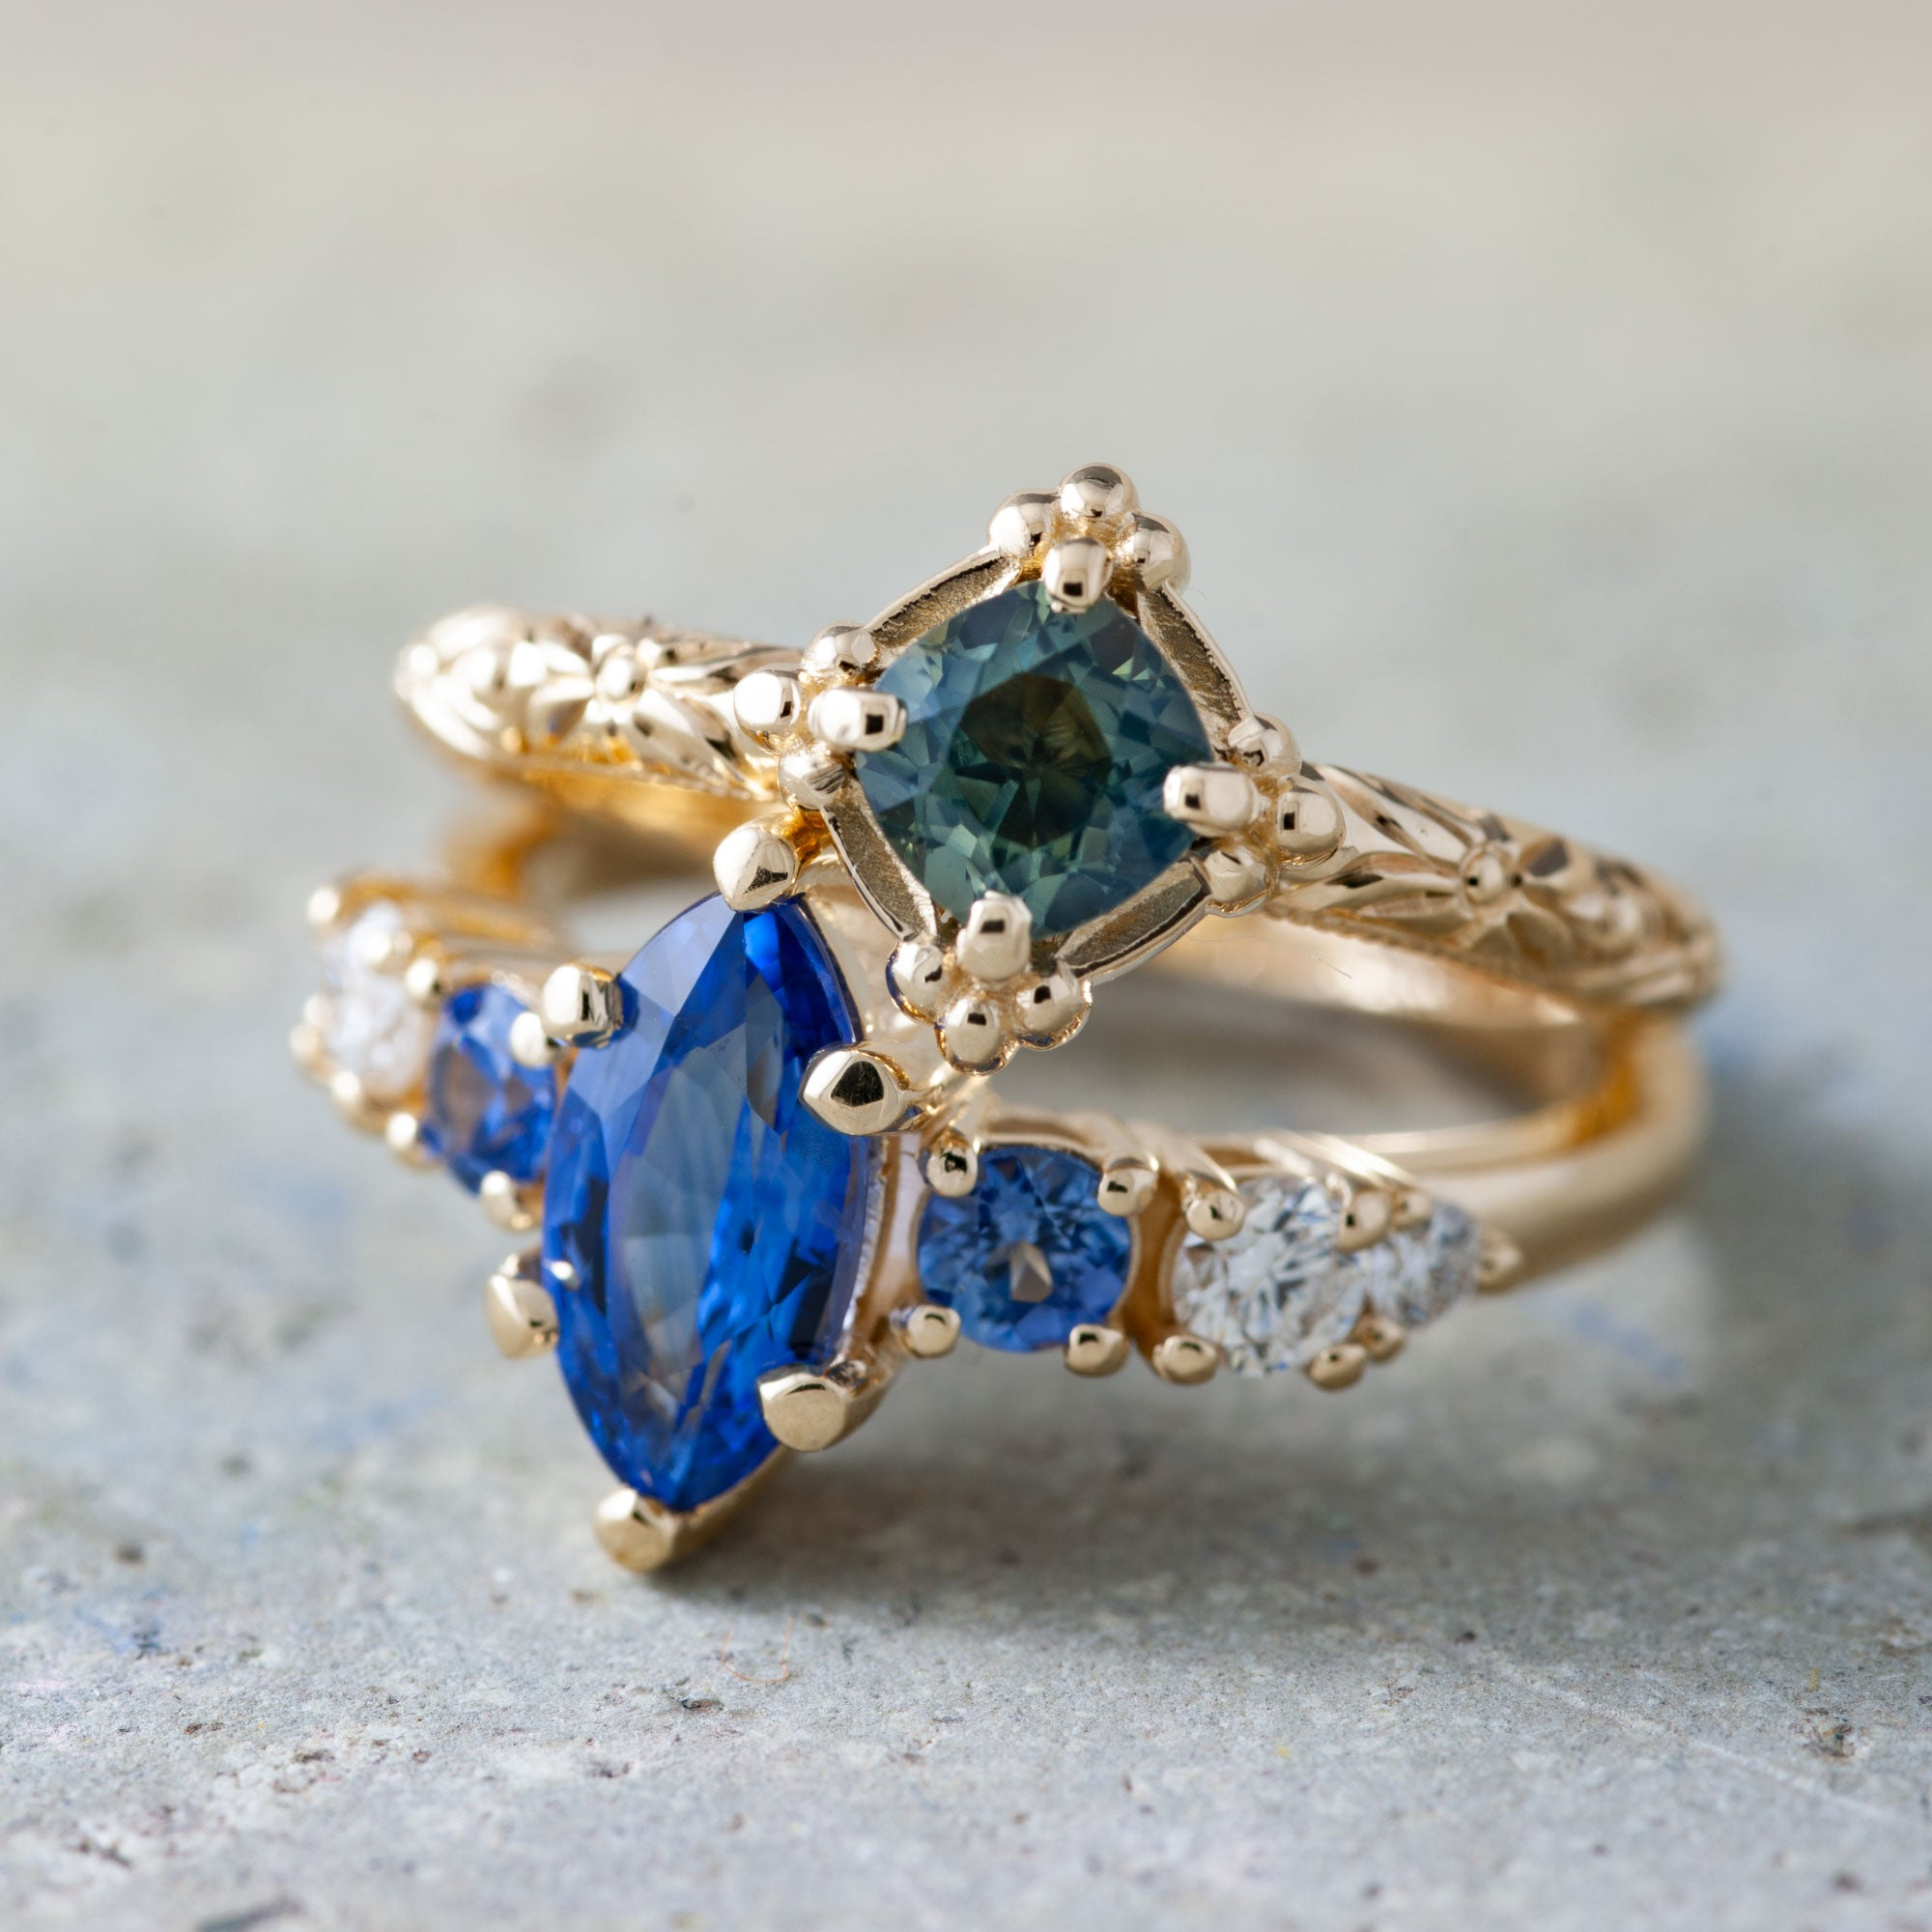 Agnes Diamond and Sapphire Engagement Ring - Era Design Vancouver